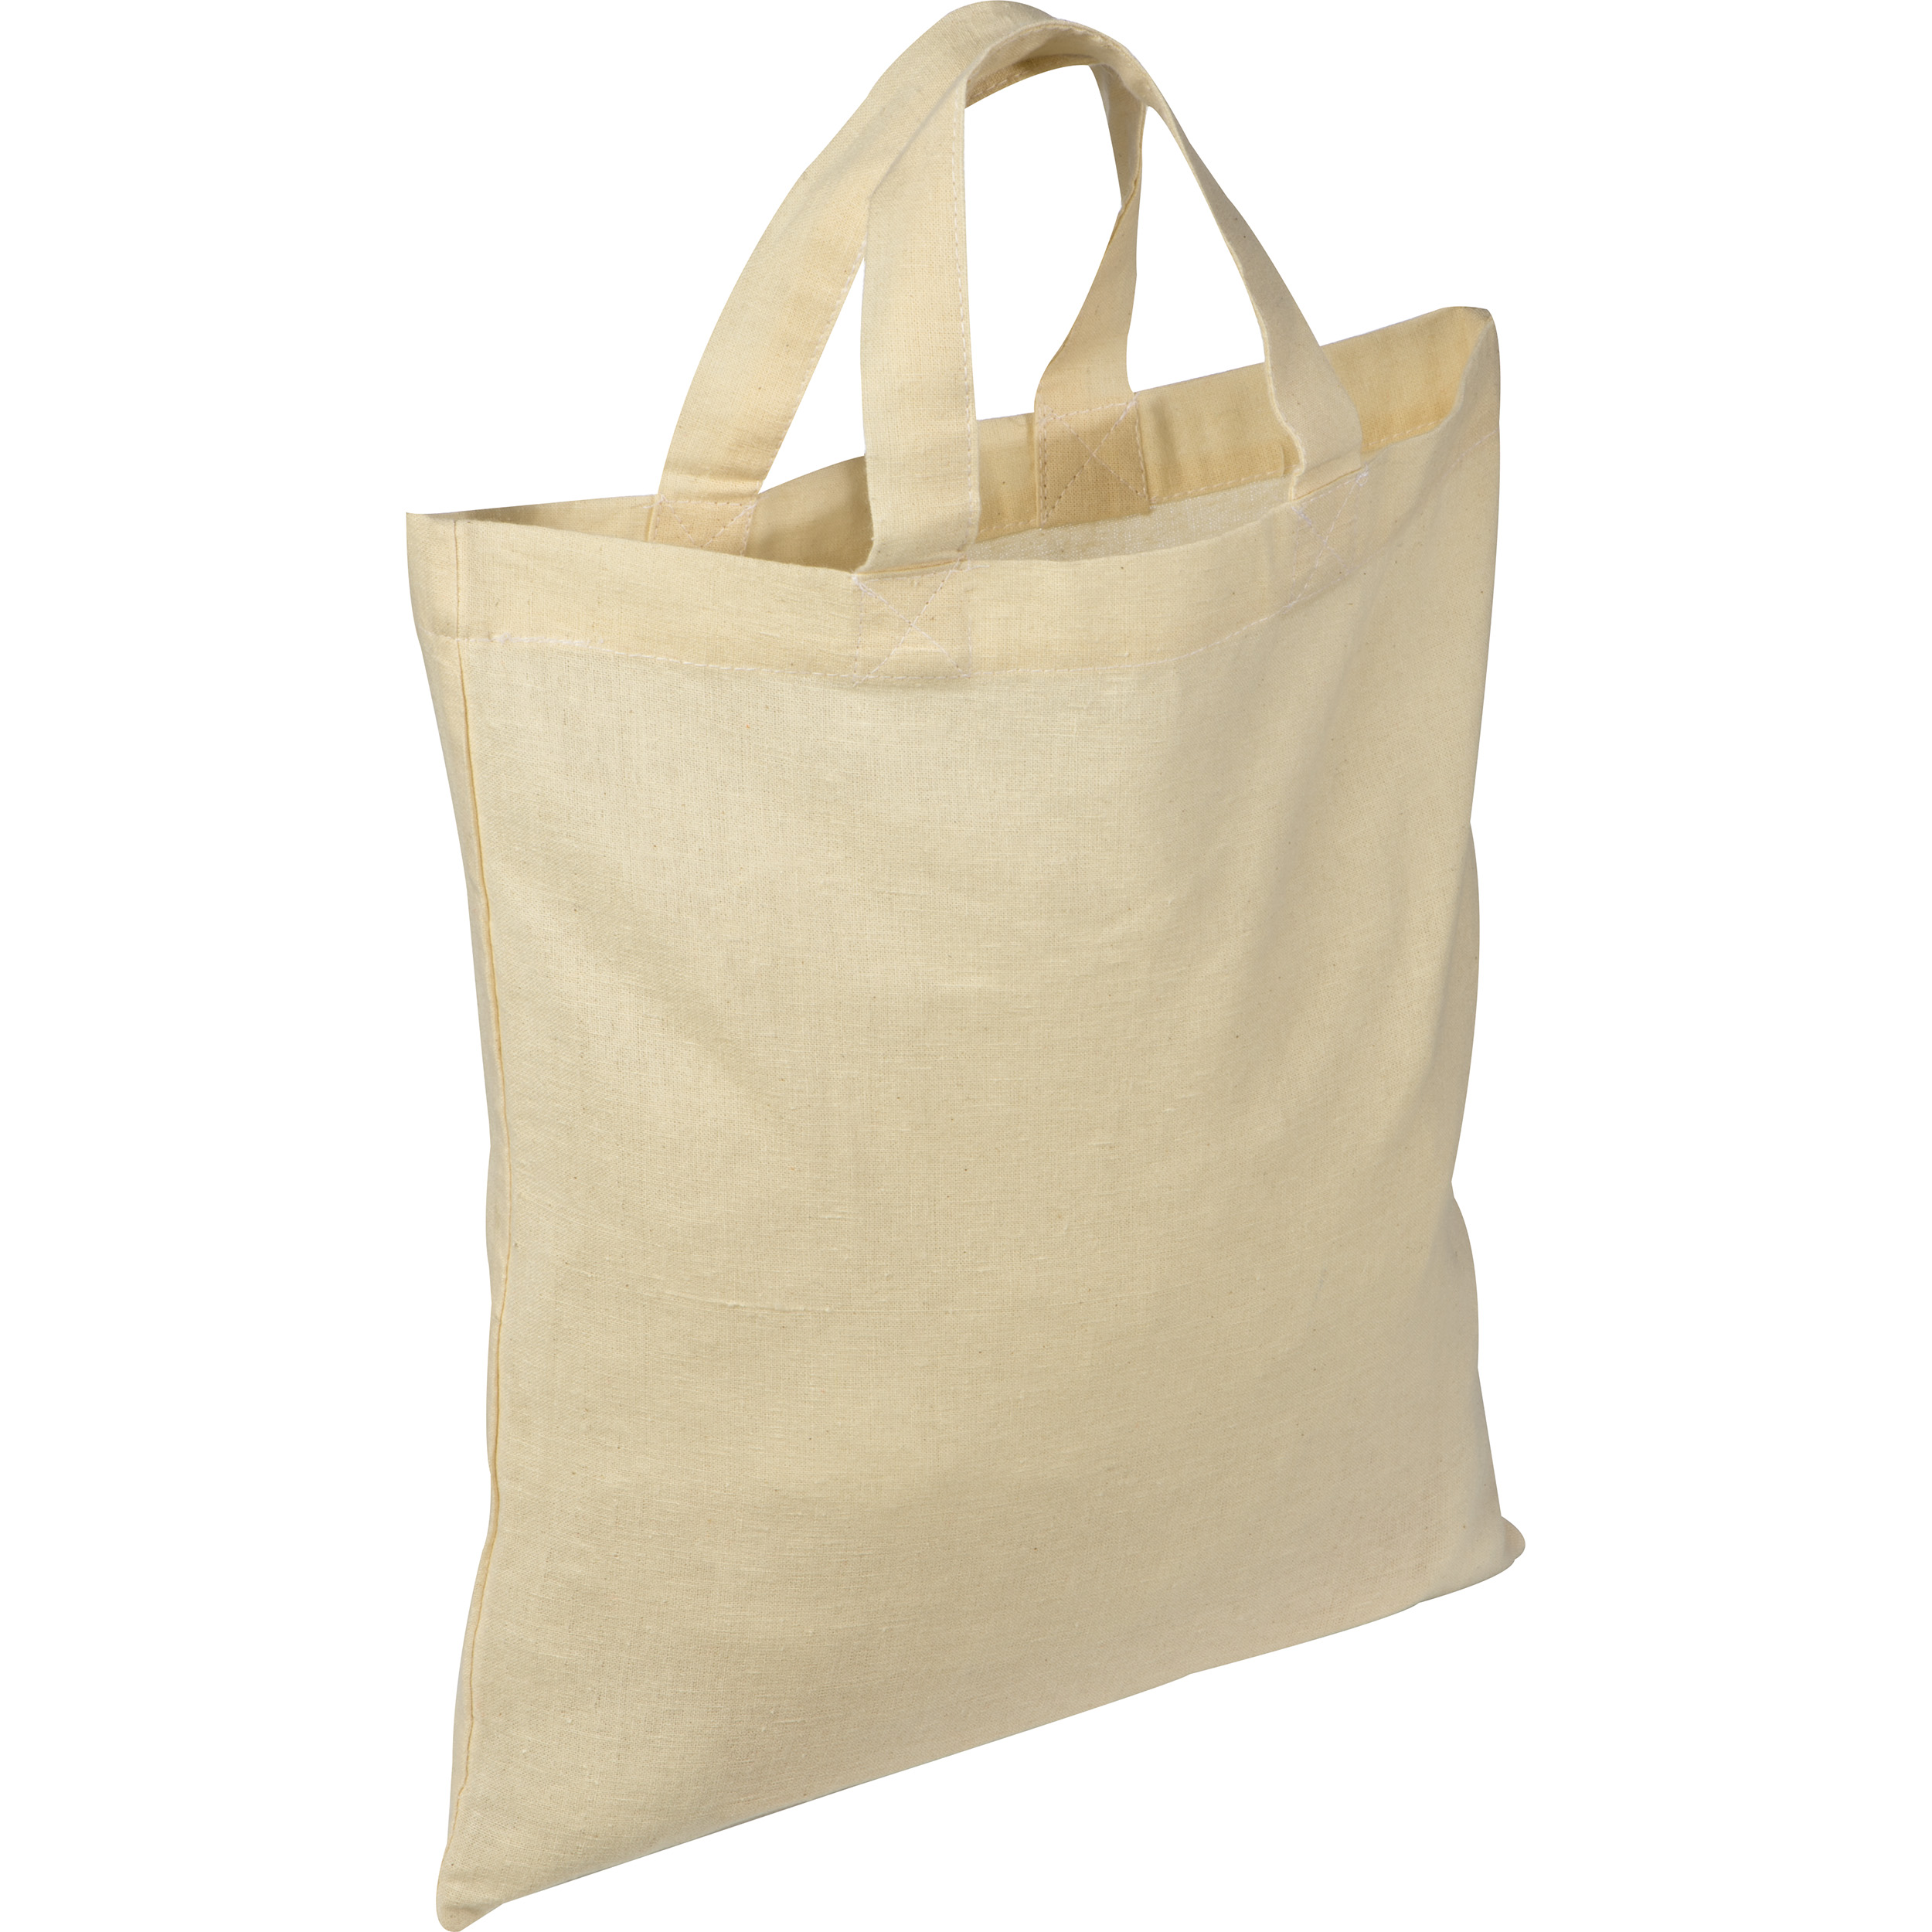 Cotton bag with short handles